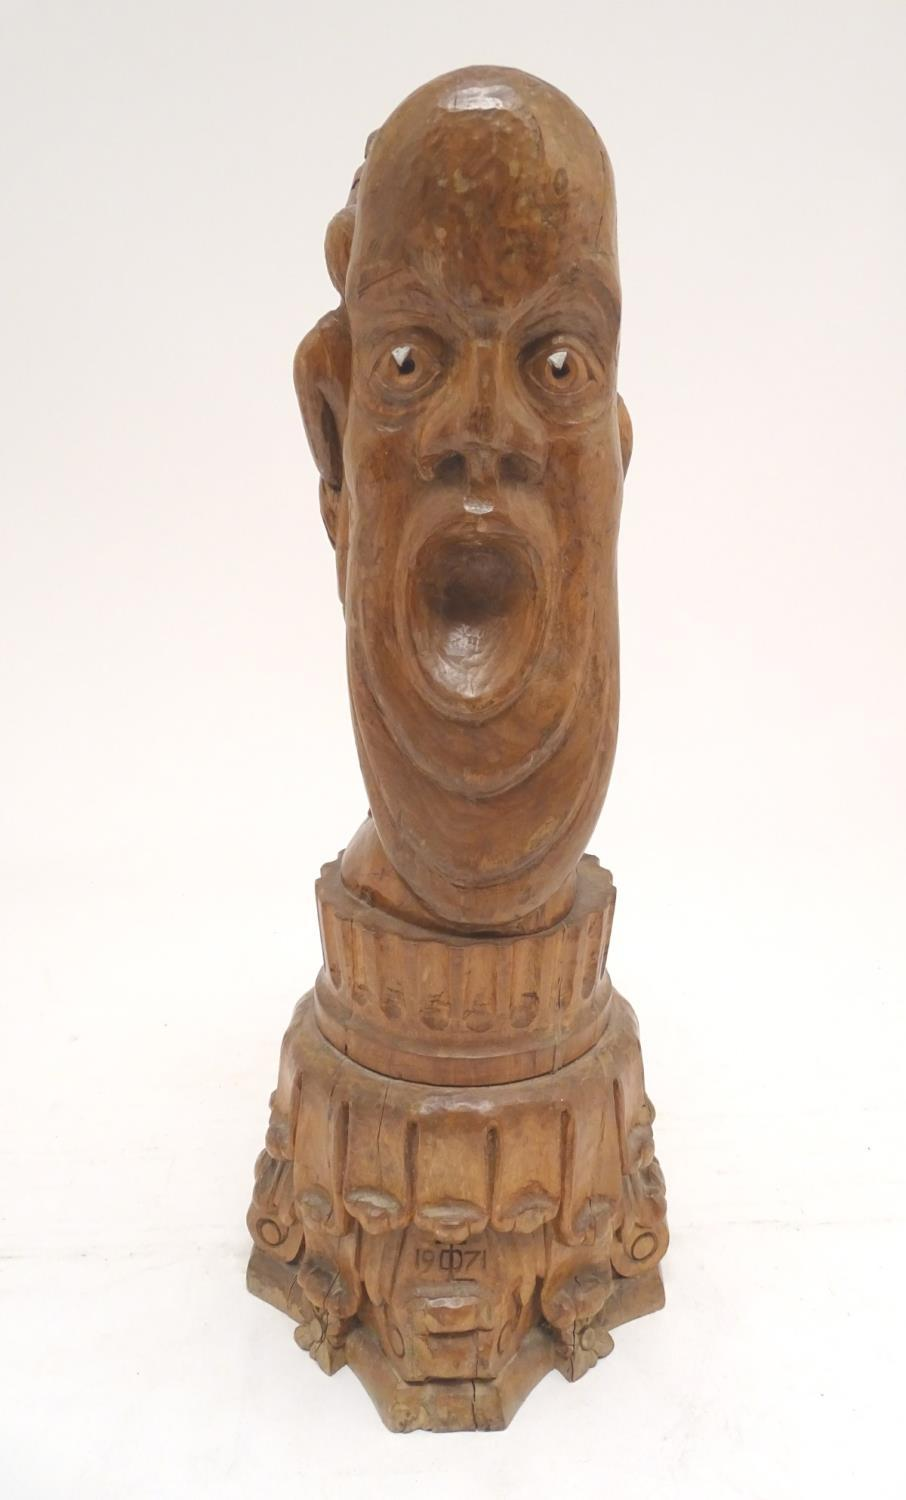 A 20thC carved wooden sculpture titled Tragic Muse to base, monogrammed TD and dated 1971 to side. - Image 9 of 17